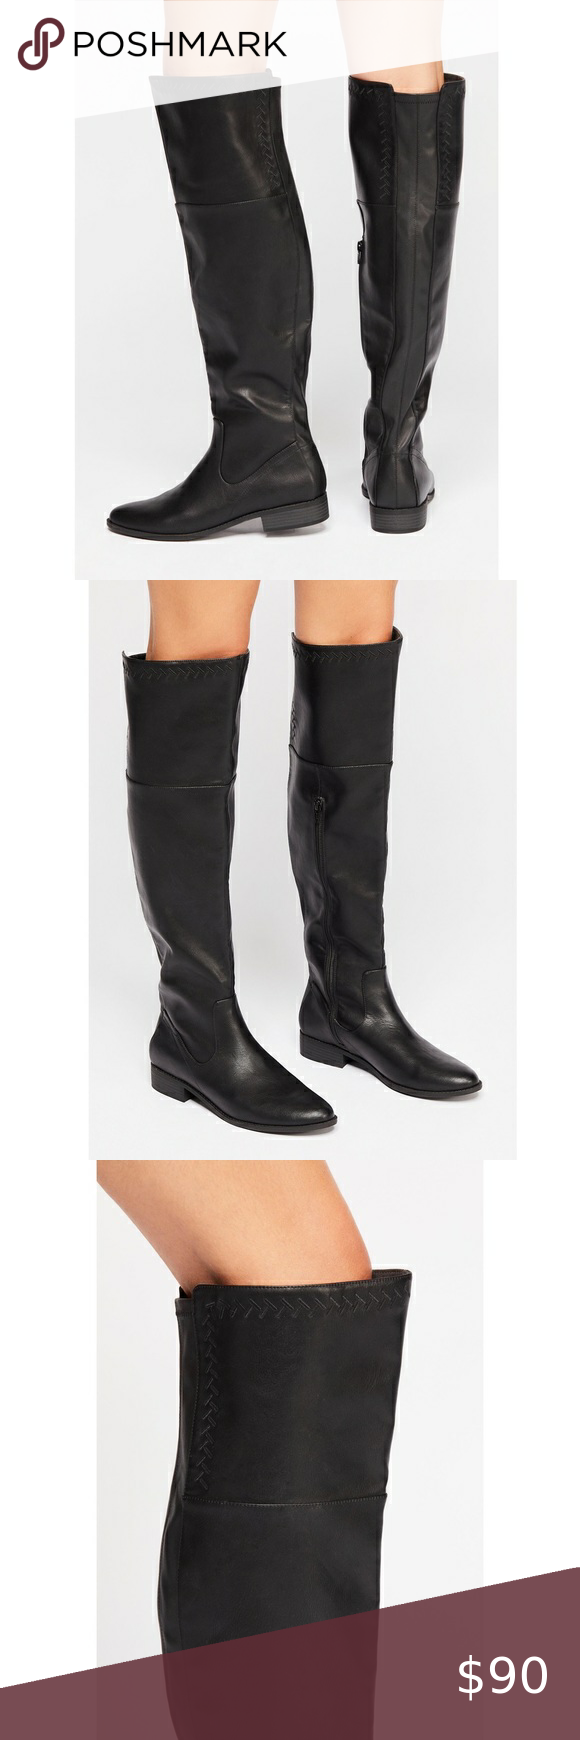 Free People Vegan Heights Tall Over